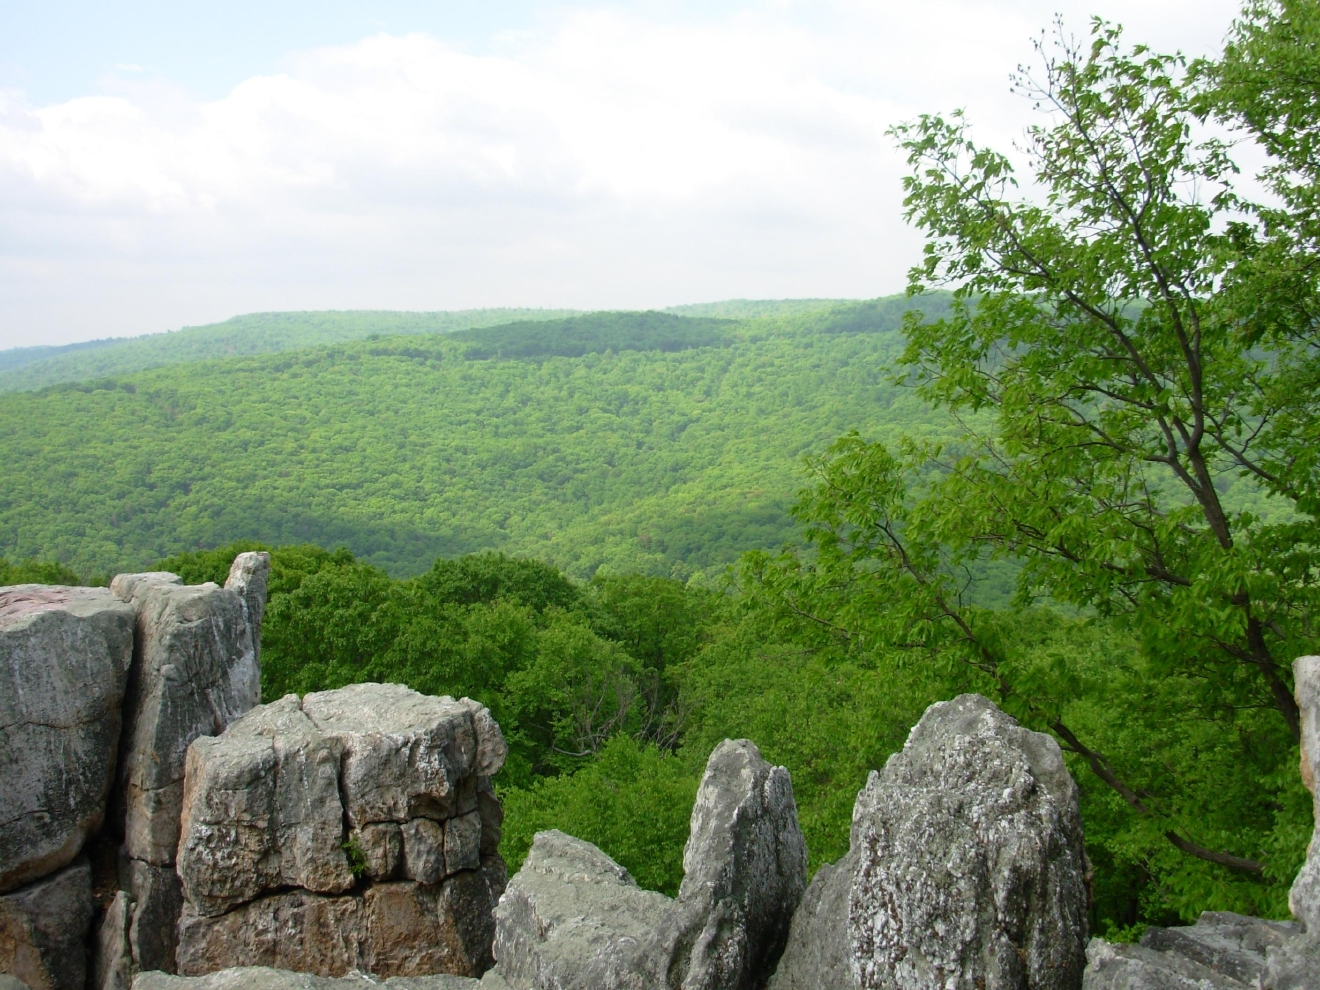 Catoctin Mountain Park (NPS.gov)